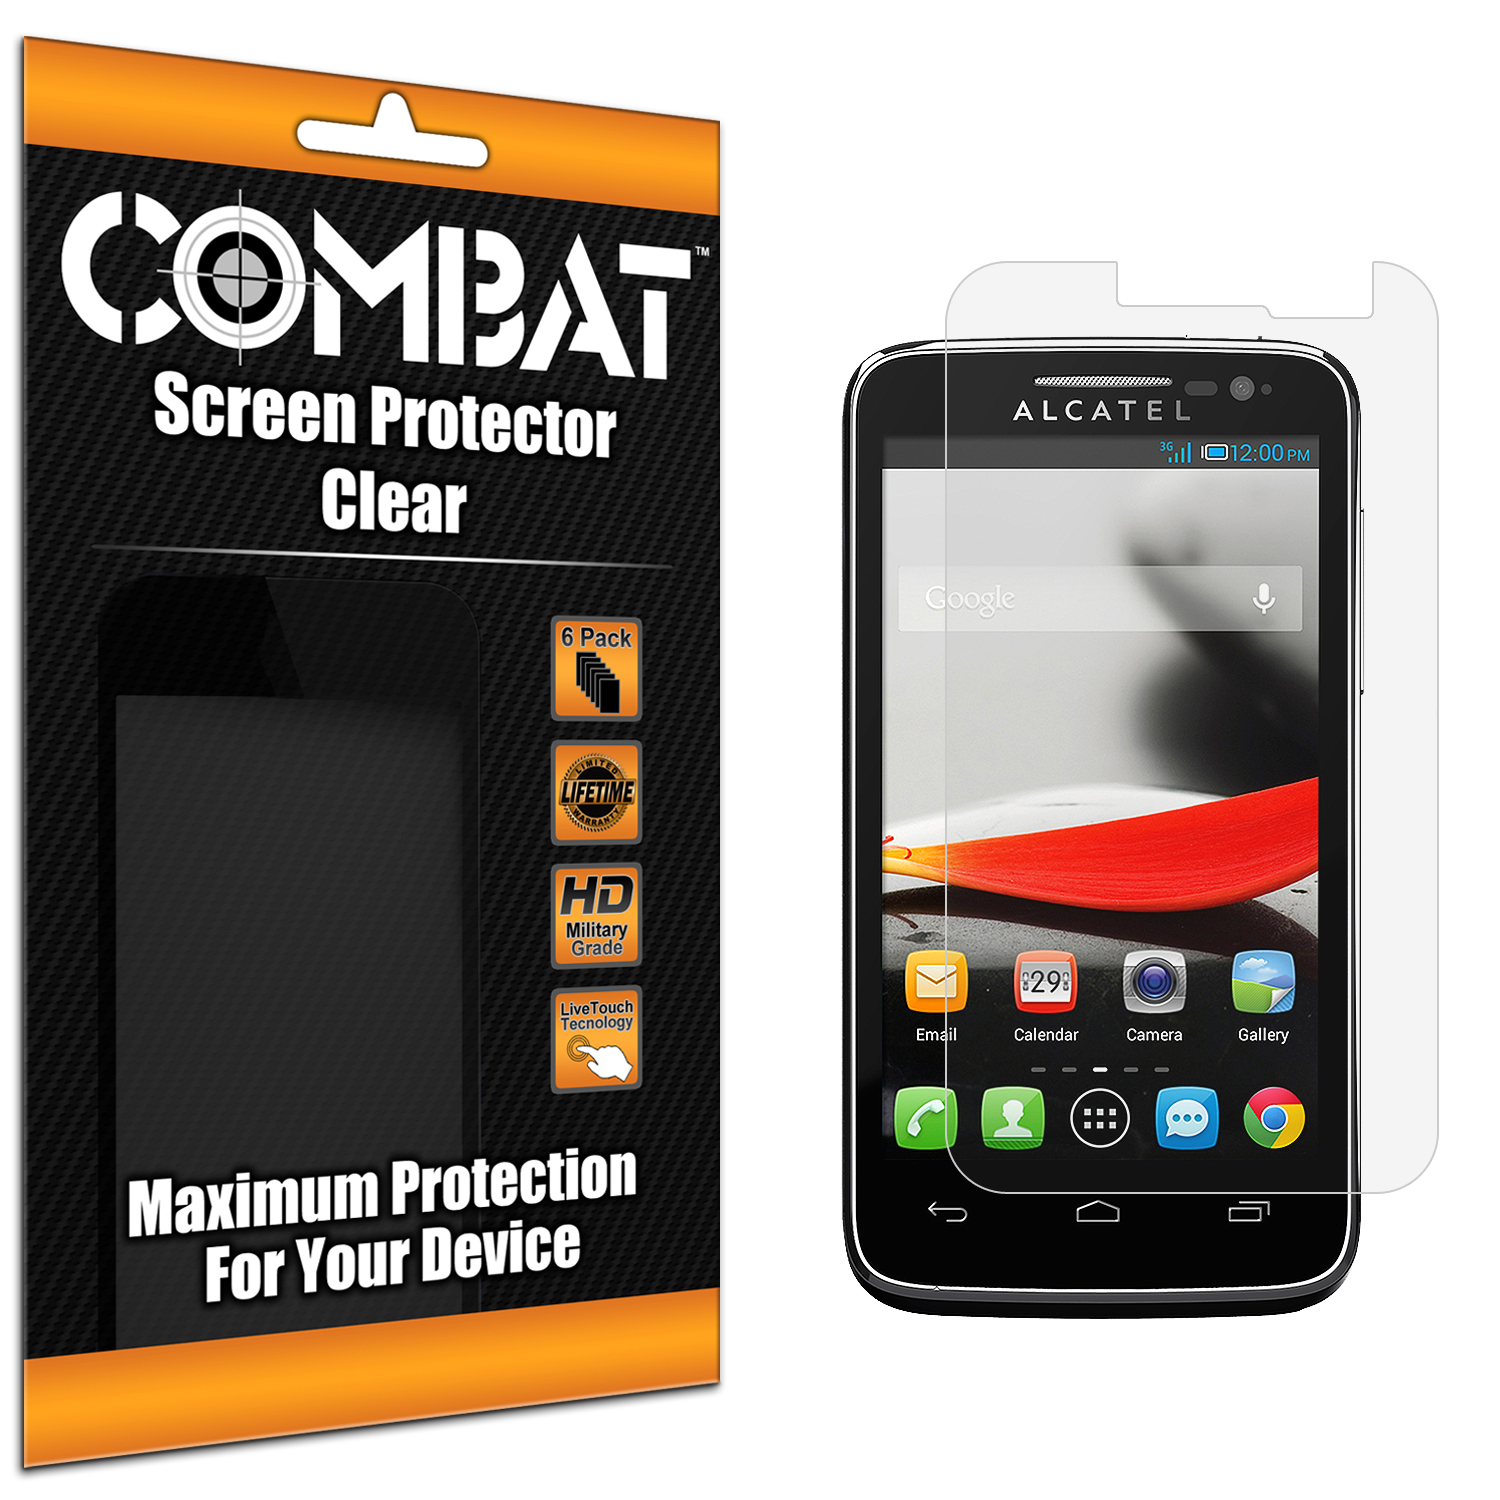 Alcatel One Touch Evolve 5020T Combat 6 Pack HD Clear Screen Protector